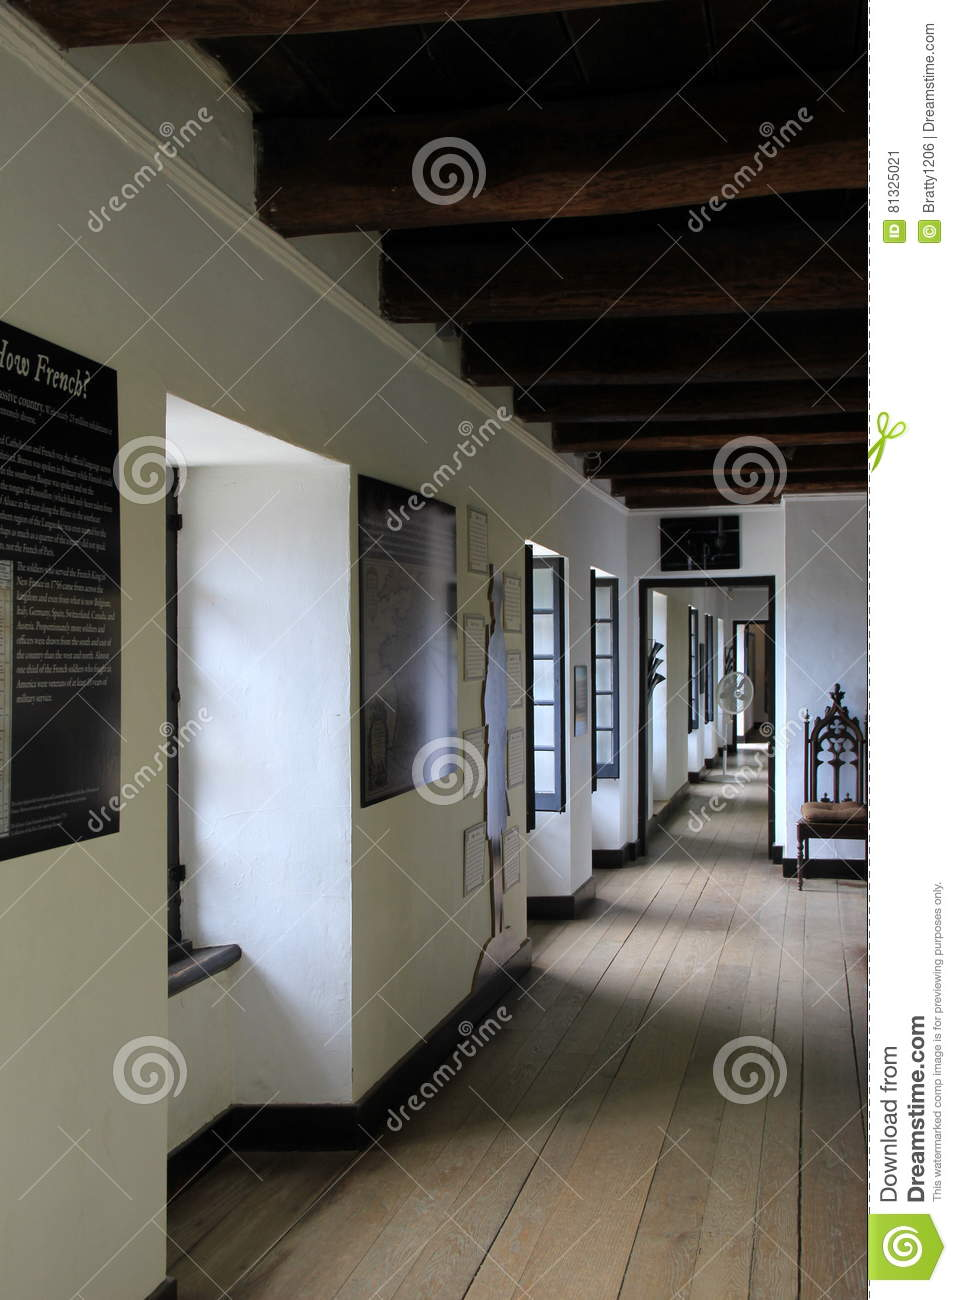 Large Open Room With Historic Items That Depict Life In Early